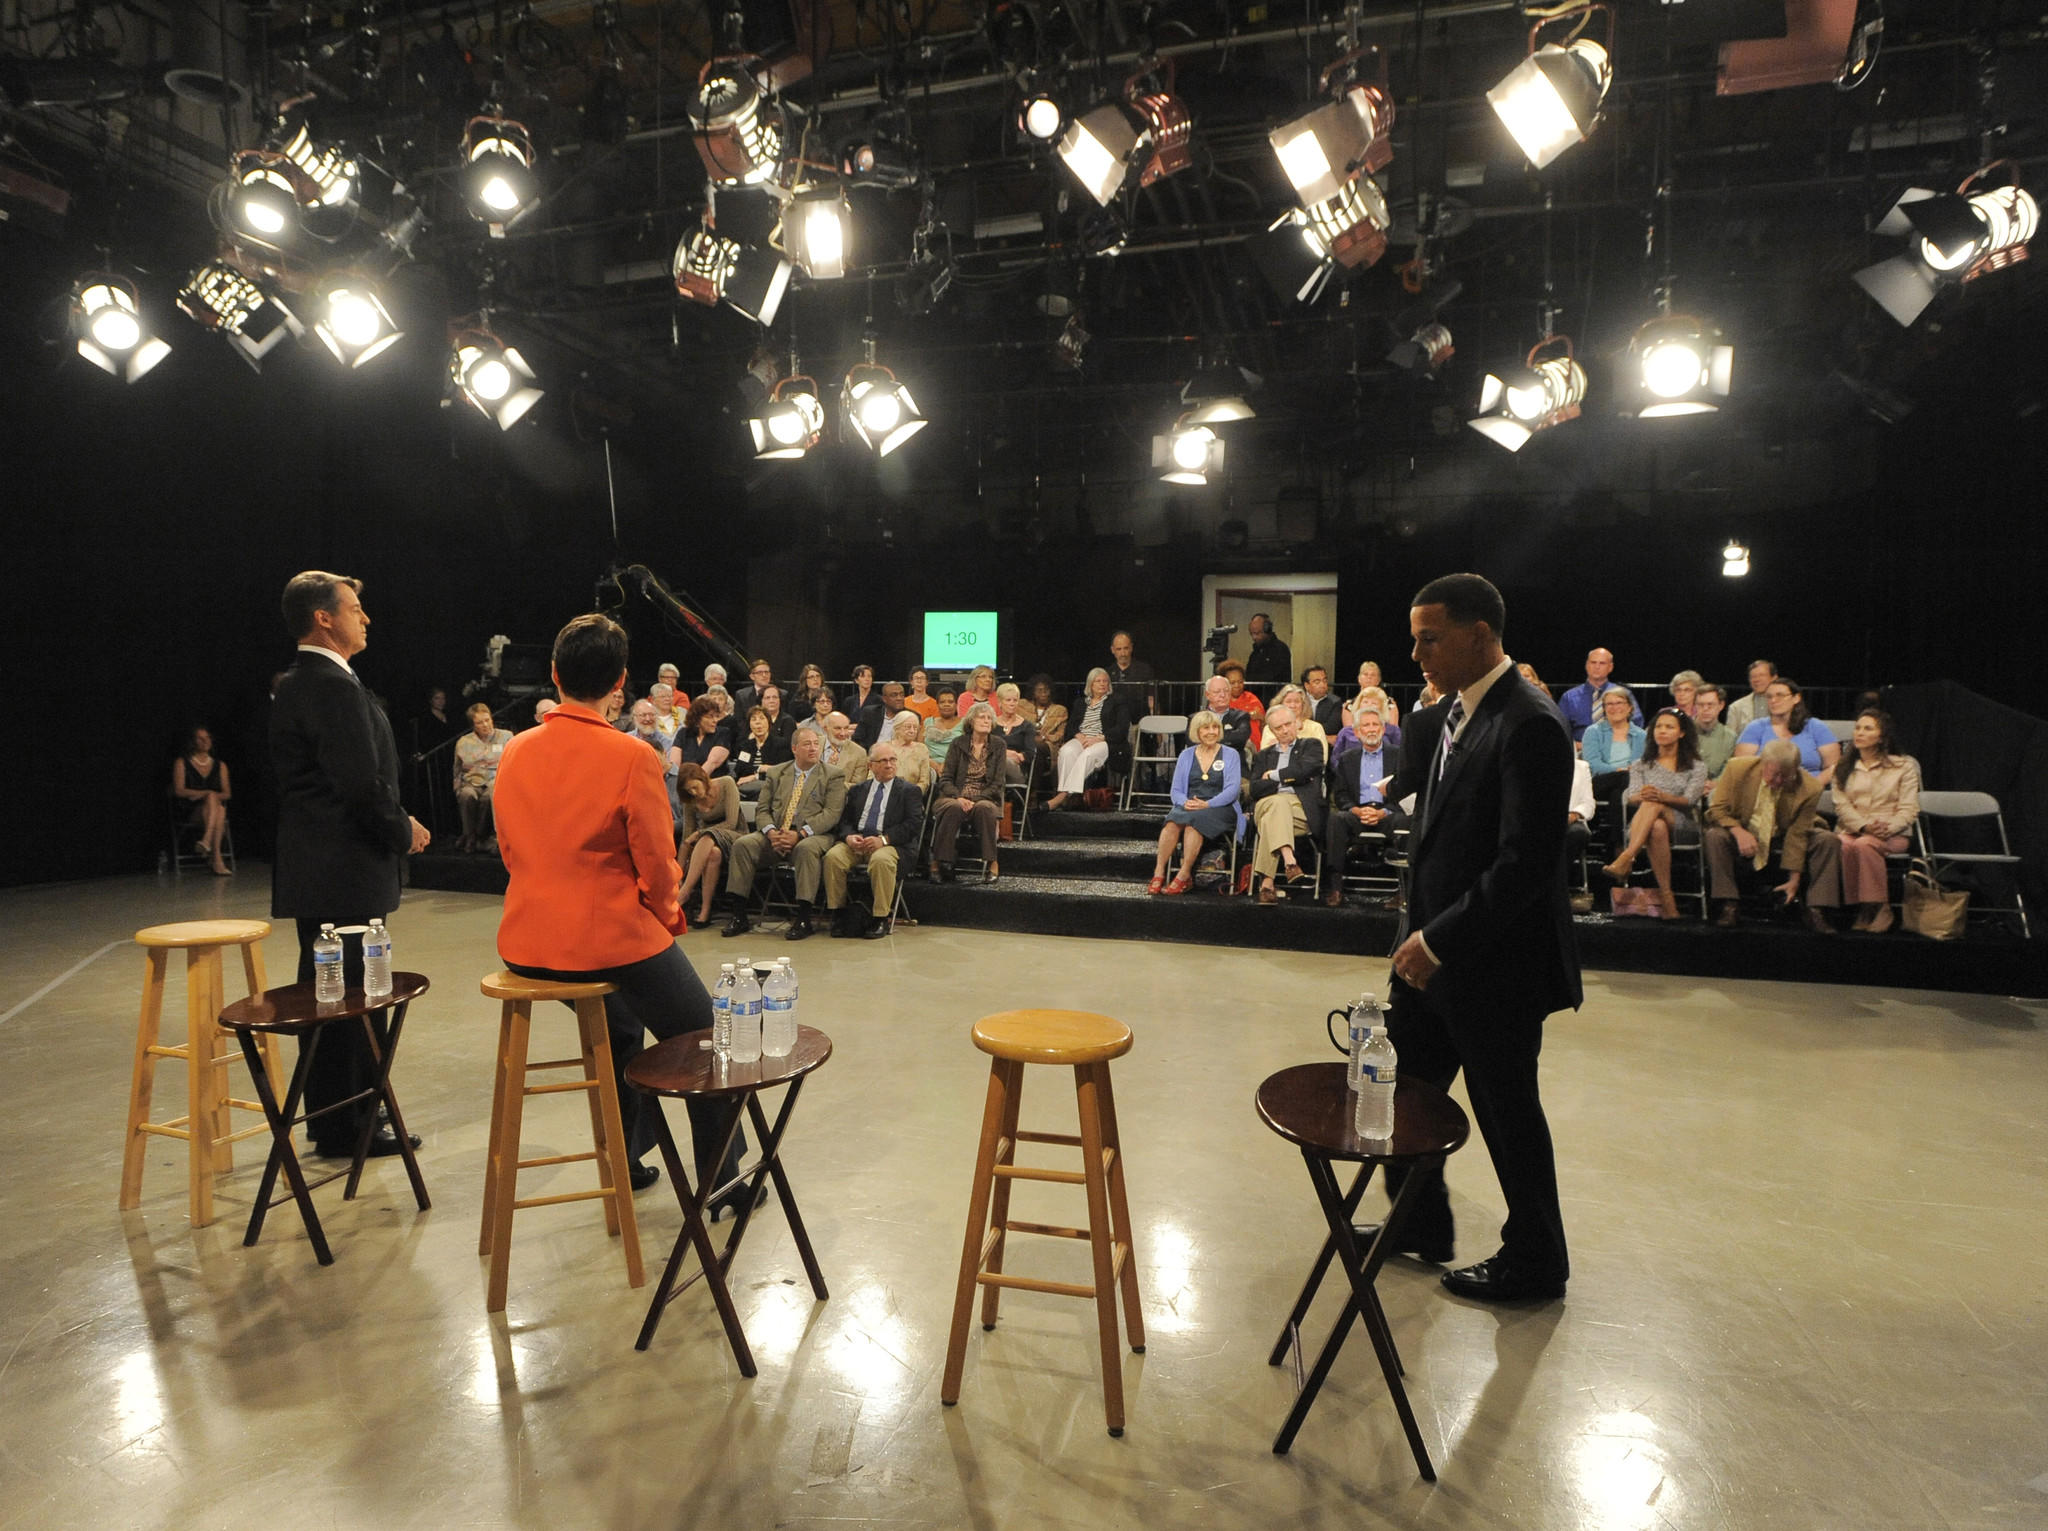 Owings Mills, MD--6/2/14- (L-R) Attorney General Douglas F. Gansler, Del. Heather Mizeur and Lt. Governor Anthony Brown, prepare for the start of the debate. Democracts running for governor debate at Maryland Public Television studios.